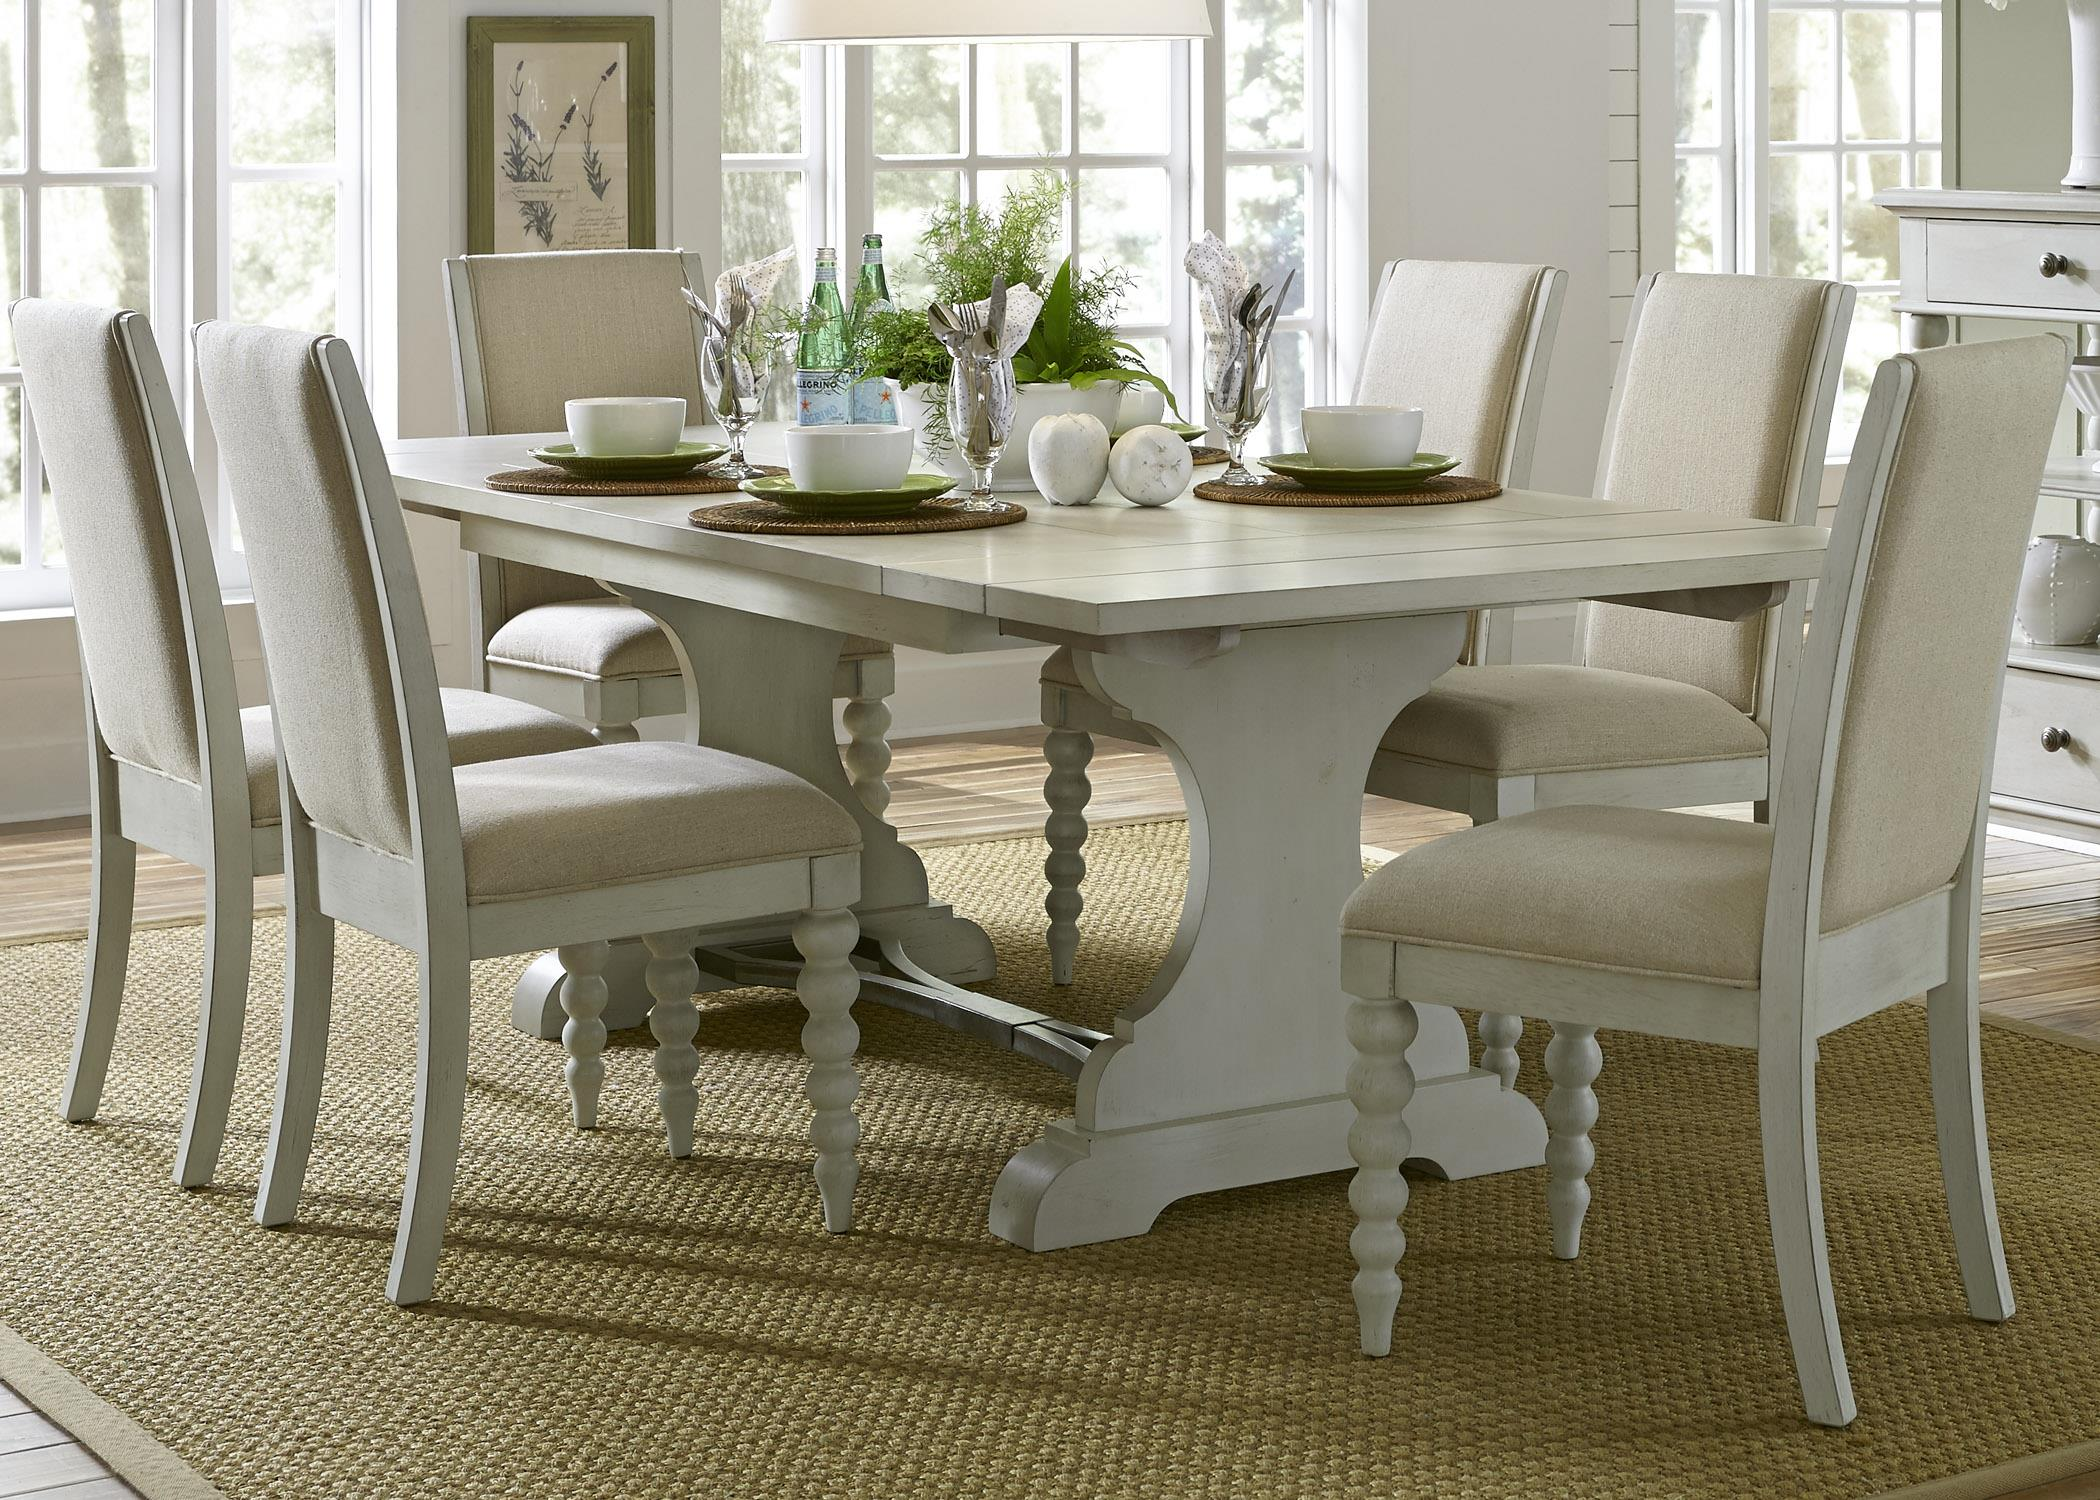 Liberty Furniture Harbor View Trestle Table and Chair Set - Item Number: 731-DR-O7TRS